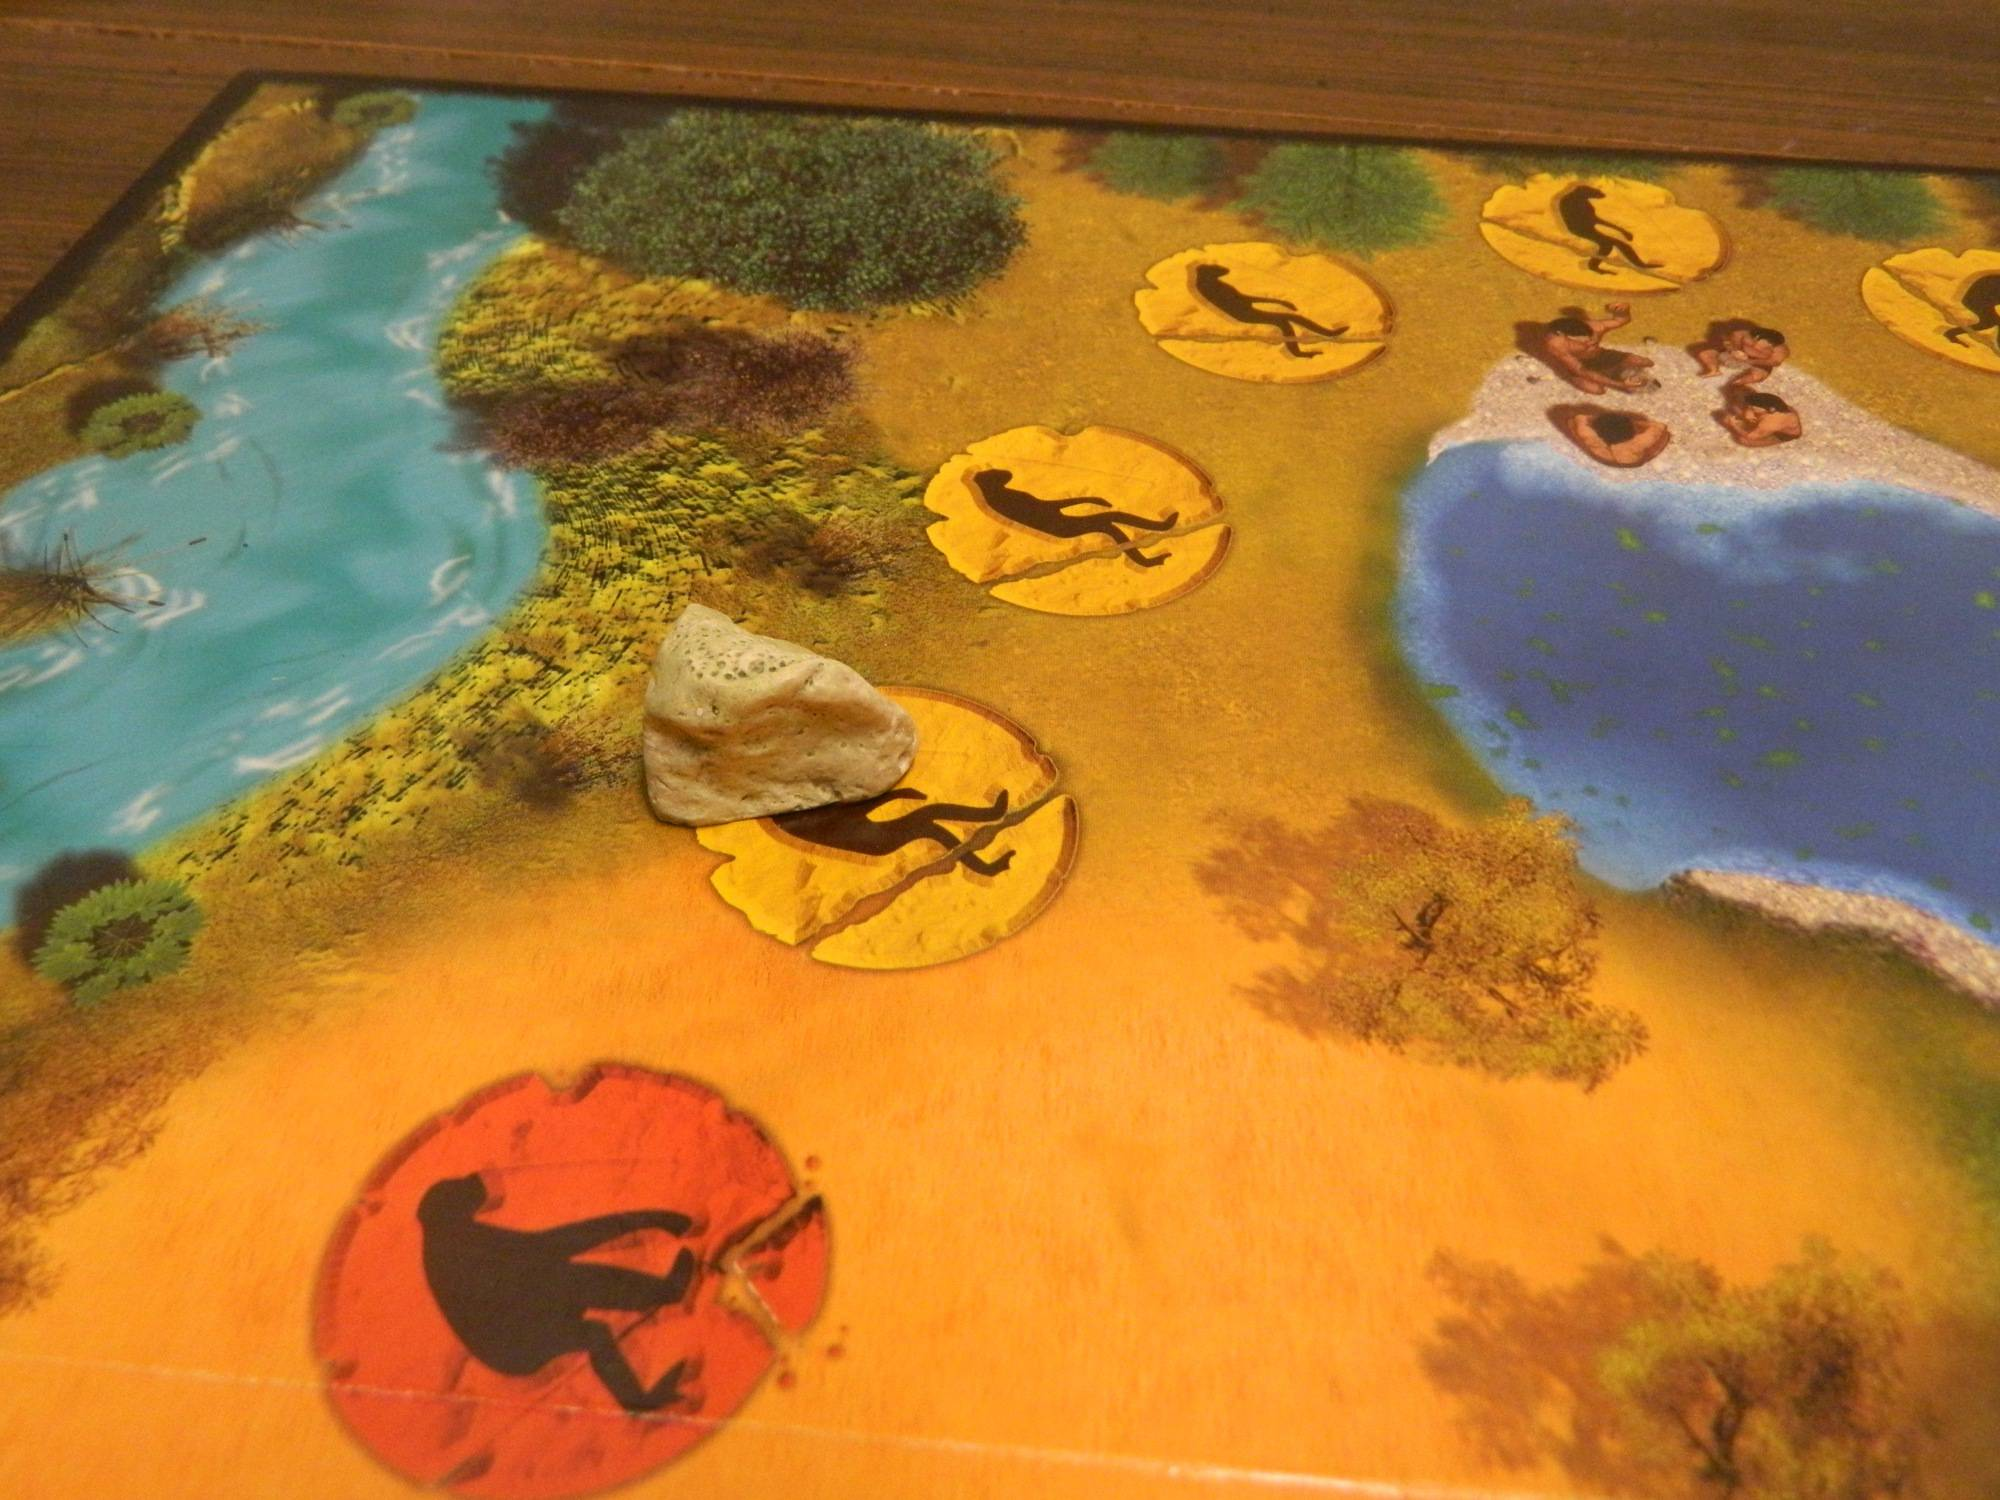 Cro-Magnon Board Game Review and Rules | Geeky Hobbies